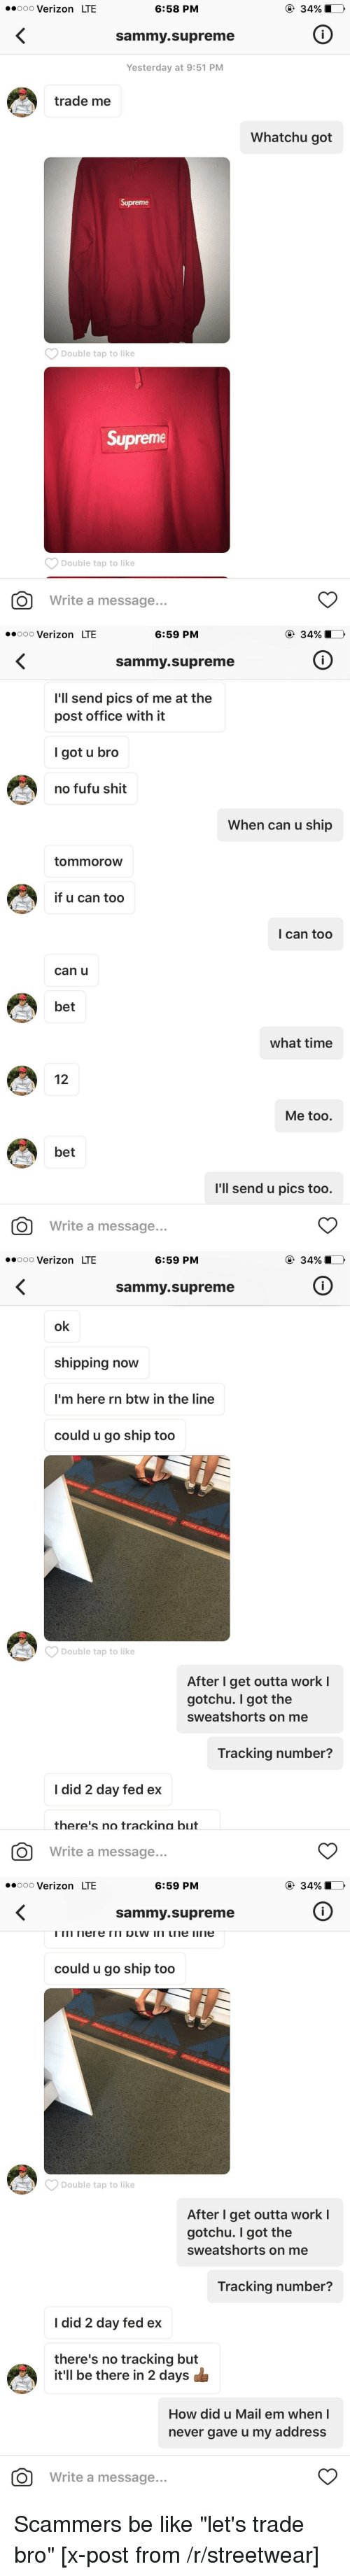 "Ex's, Post Office, and Shit: 6:58 PM  ooooo Verizon LTE  Sammy Supreme  Yesterday at 9:51 PM  trade me  Supreme  Double tap to like  Supreme  Double tap to like  O Write a message  Whatchu got   6:59 PM  ooooo Verizon LTE  Sammy Supreme  I'll send pics of me at the  post office with it  I got u bro  no fufu shit  When can u ship  tommorow  if u can too  I can too  can u  bet  what time  12  Me too.  bet  I'll send u pics too.  O Write a message   6:59 PM  ooooo Verizon LTE  Sammy Supreme  ok  shipping now  I'm here rn btw in the line  could u go ship too  Double tap to like  After I get outta work l  got chu. got the  sweatshorts on me  Tracking number?  I did 2 day fed ex  there's no trackina but  O Write a message   6:59 PM  ooooo Verizon LTE  Sammy Supreme  could u go ship too  After I get outta work I  gotchu. I got the  sweatshorts on me  Tracking number?  I did 2 day fed ex  there's no tracking but  it'll be there in 2 days  How did u Mail em when I  never gave u my address  O Write a message Scammers be like ""let's trade bro"" [x-post from /r/streetwear]"